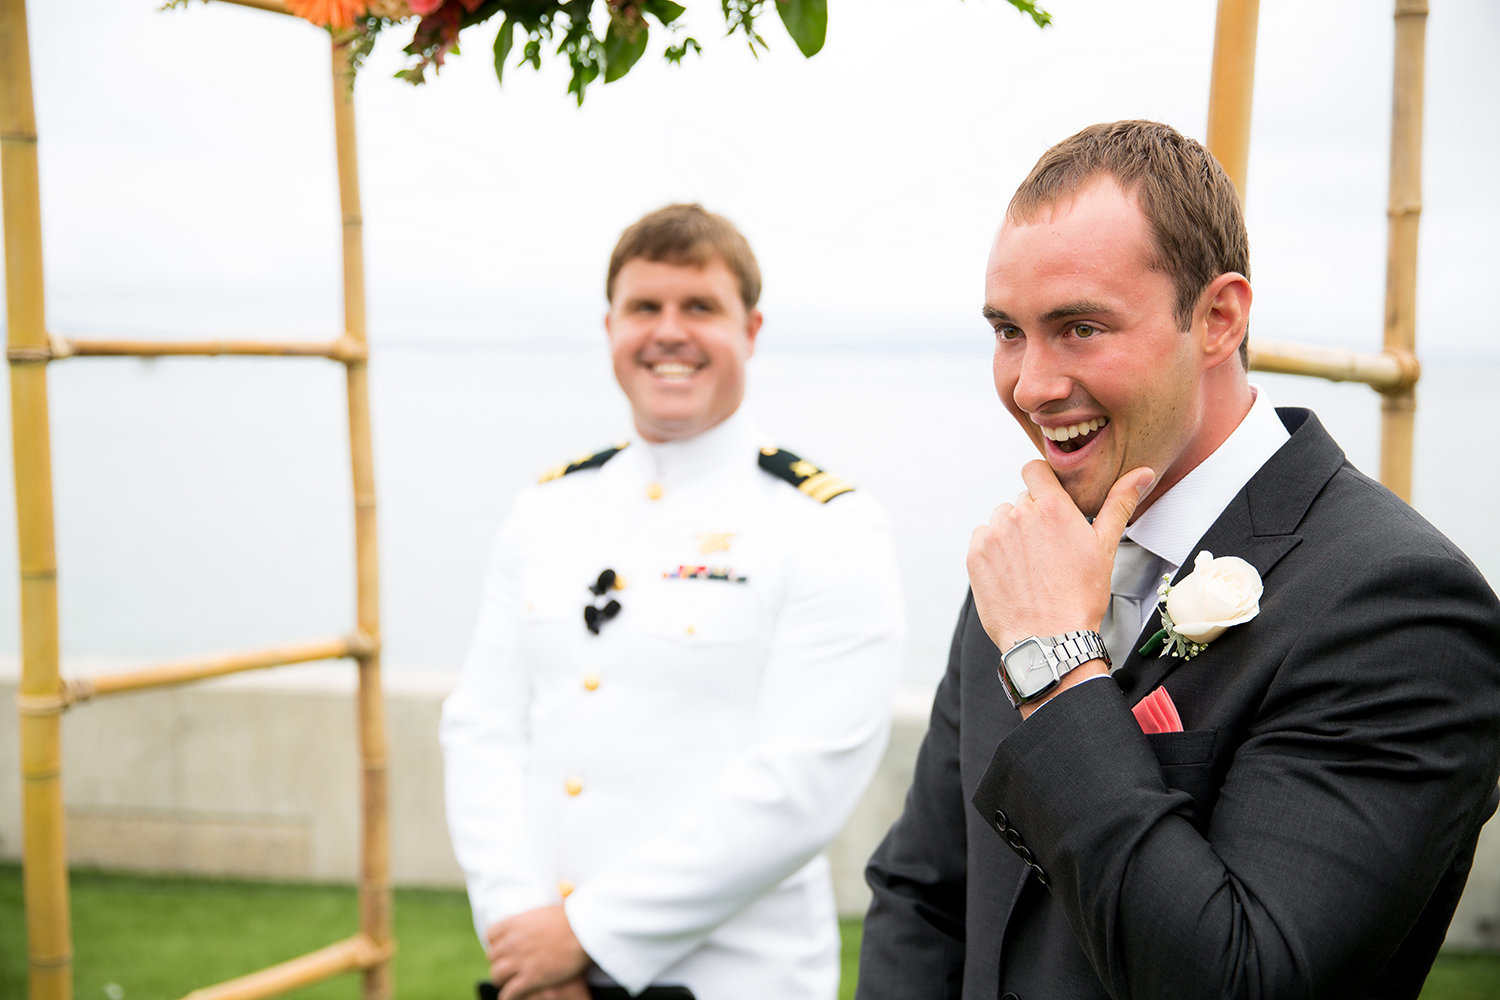 Point Loma Sub Base wedding photos groom seeing bride first time at ceremony